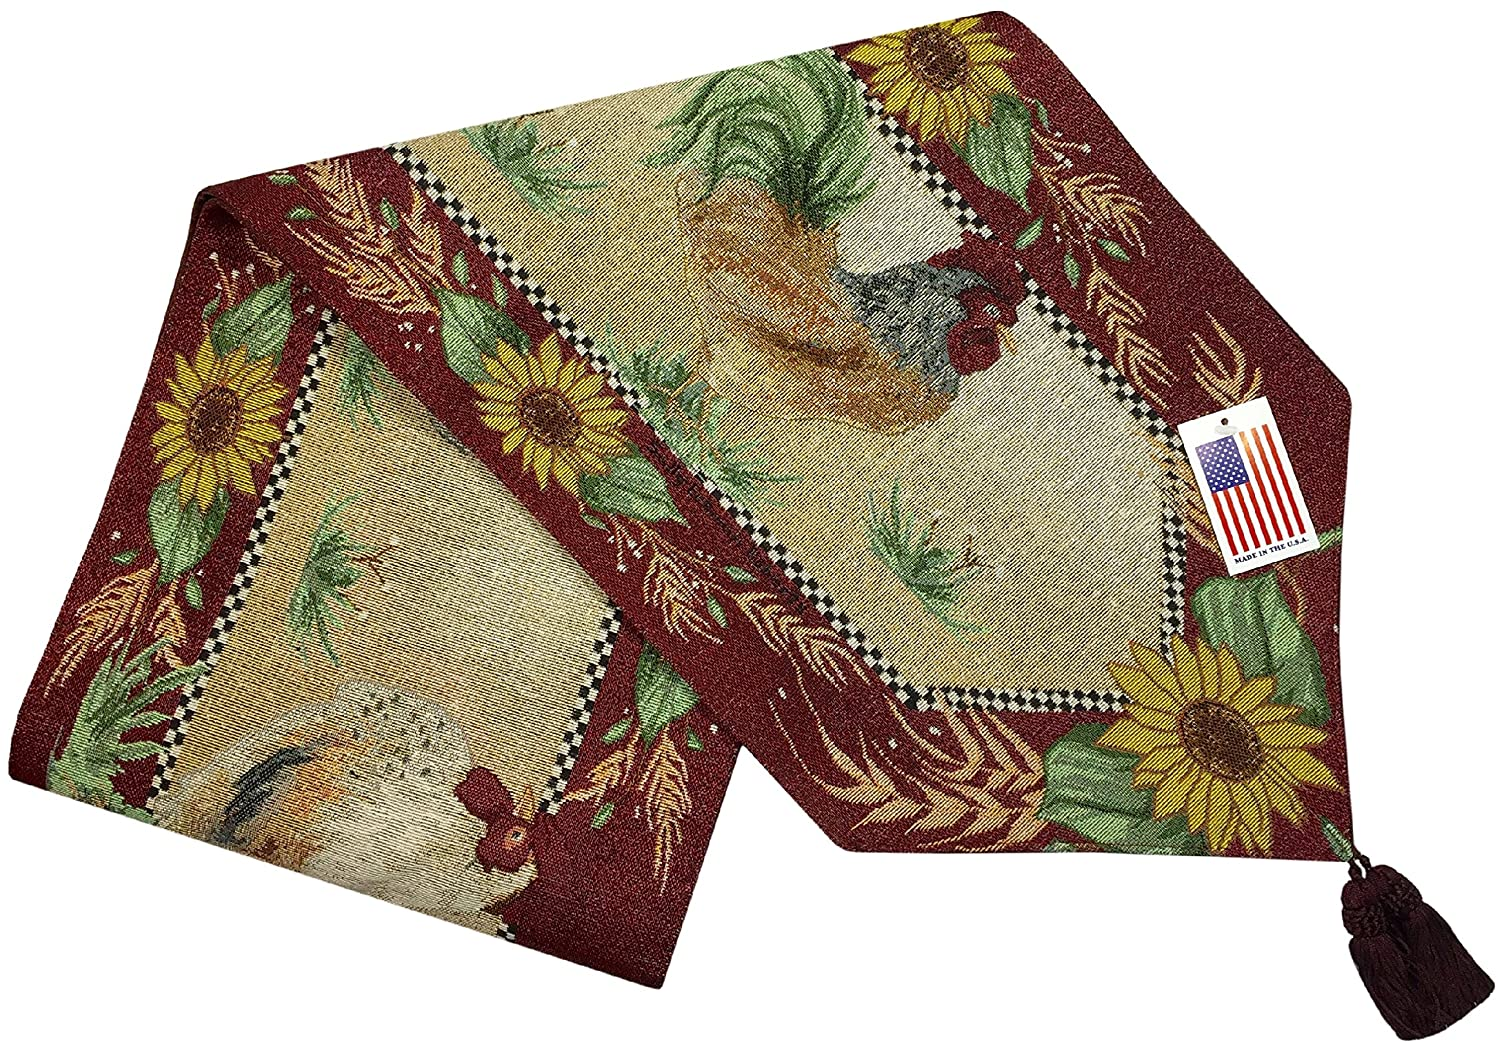 Manual Chanticleer Rooster Sunflowers Lined Tapestry Tablerunner UBIC72 13x72